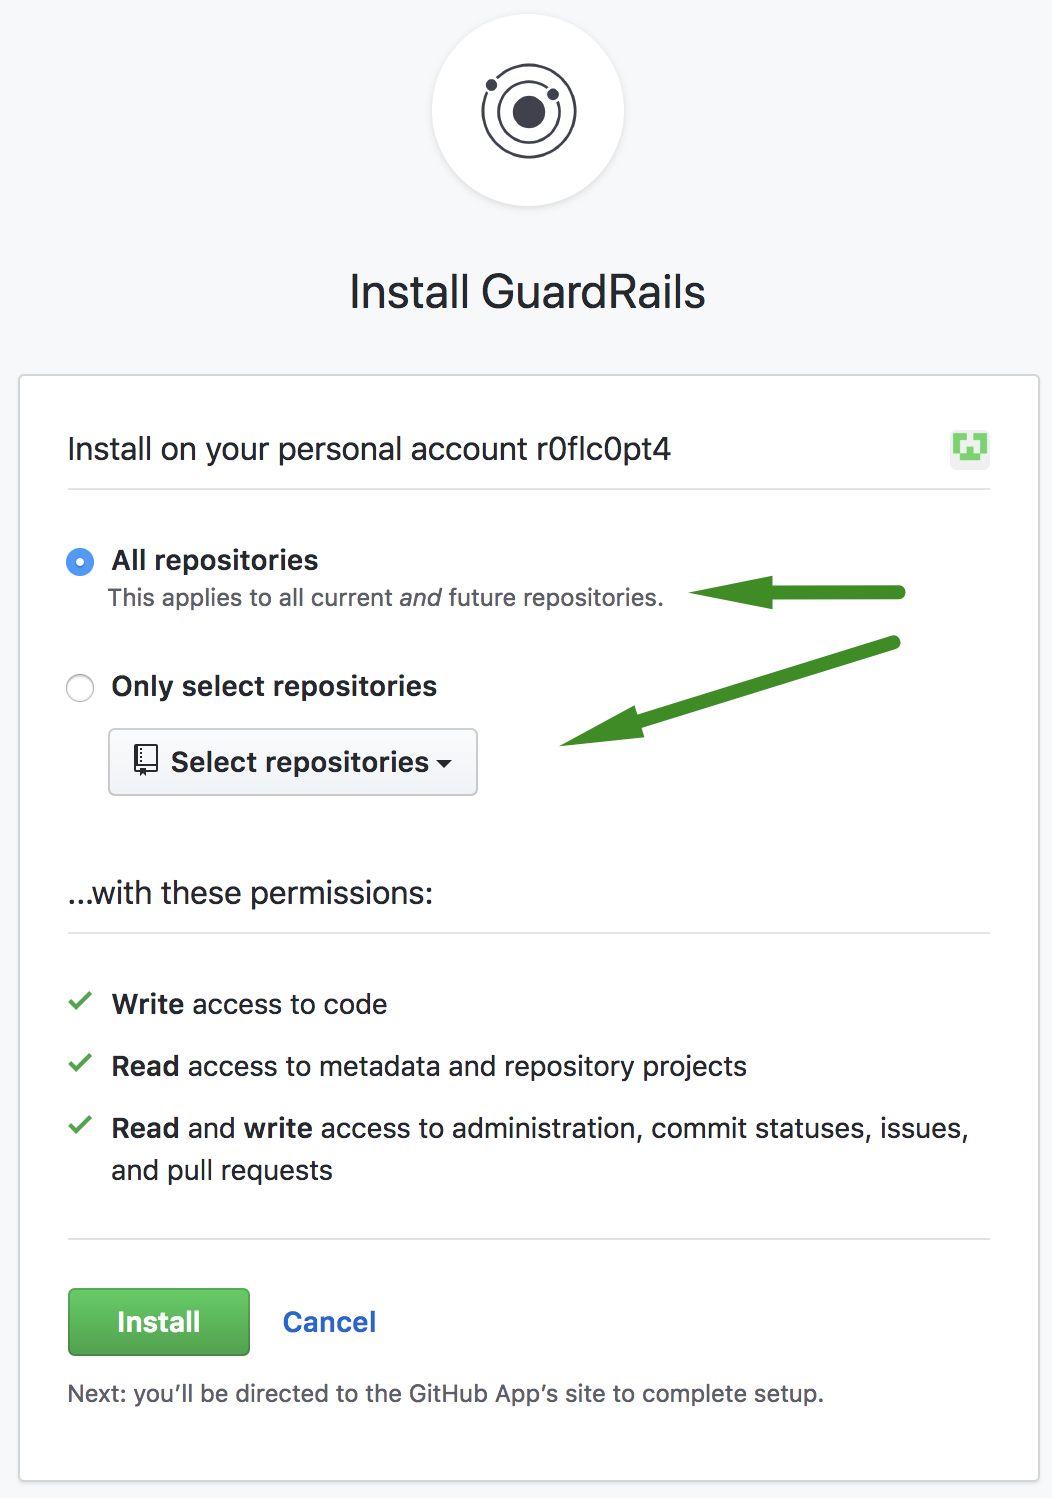 Choose the repositories that you want to verify